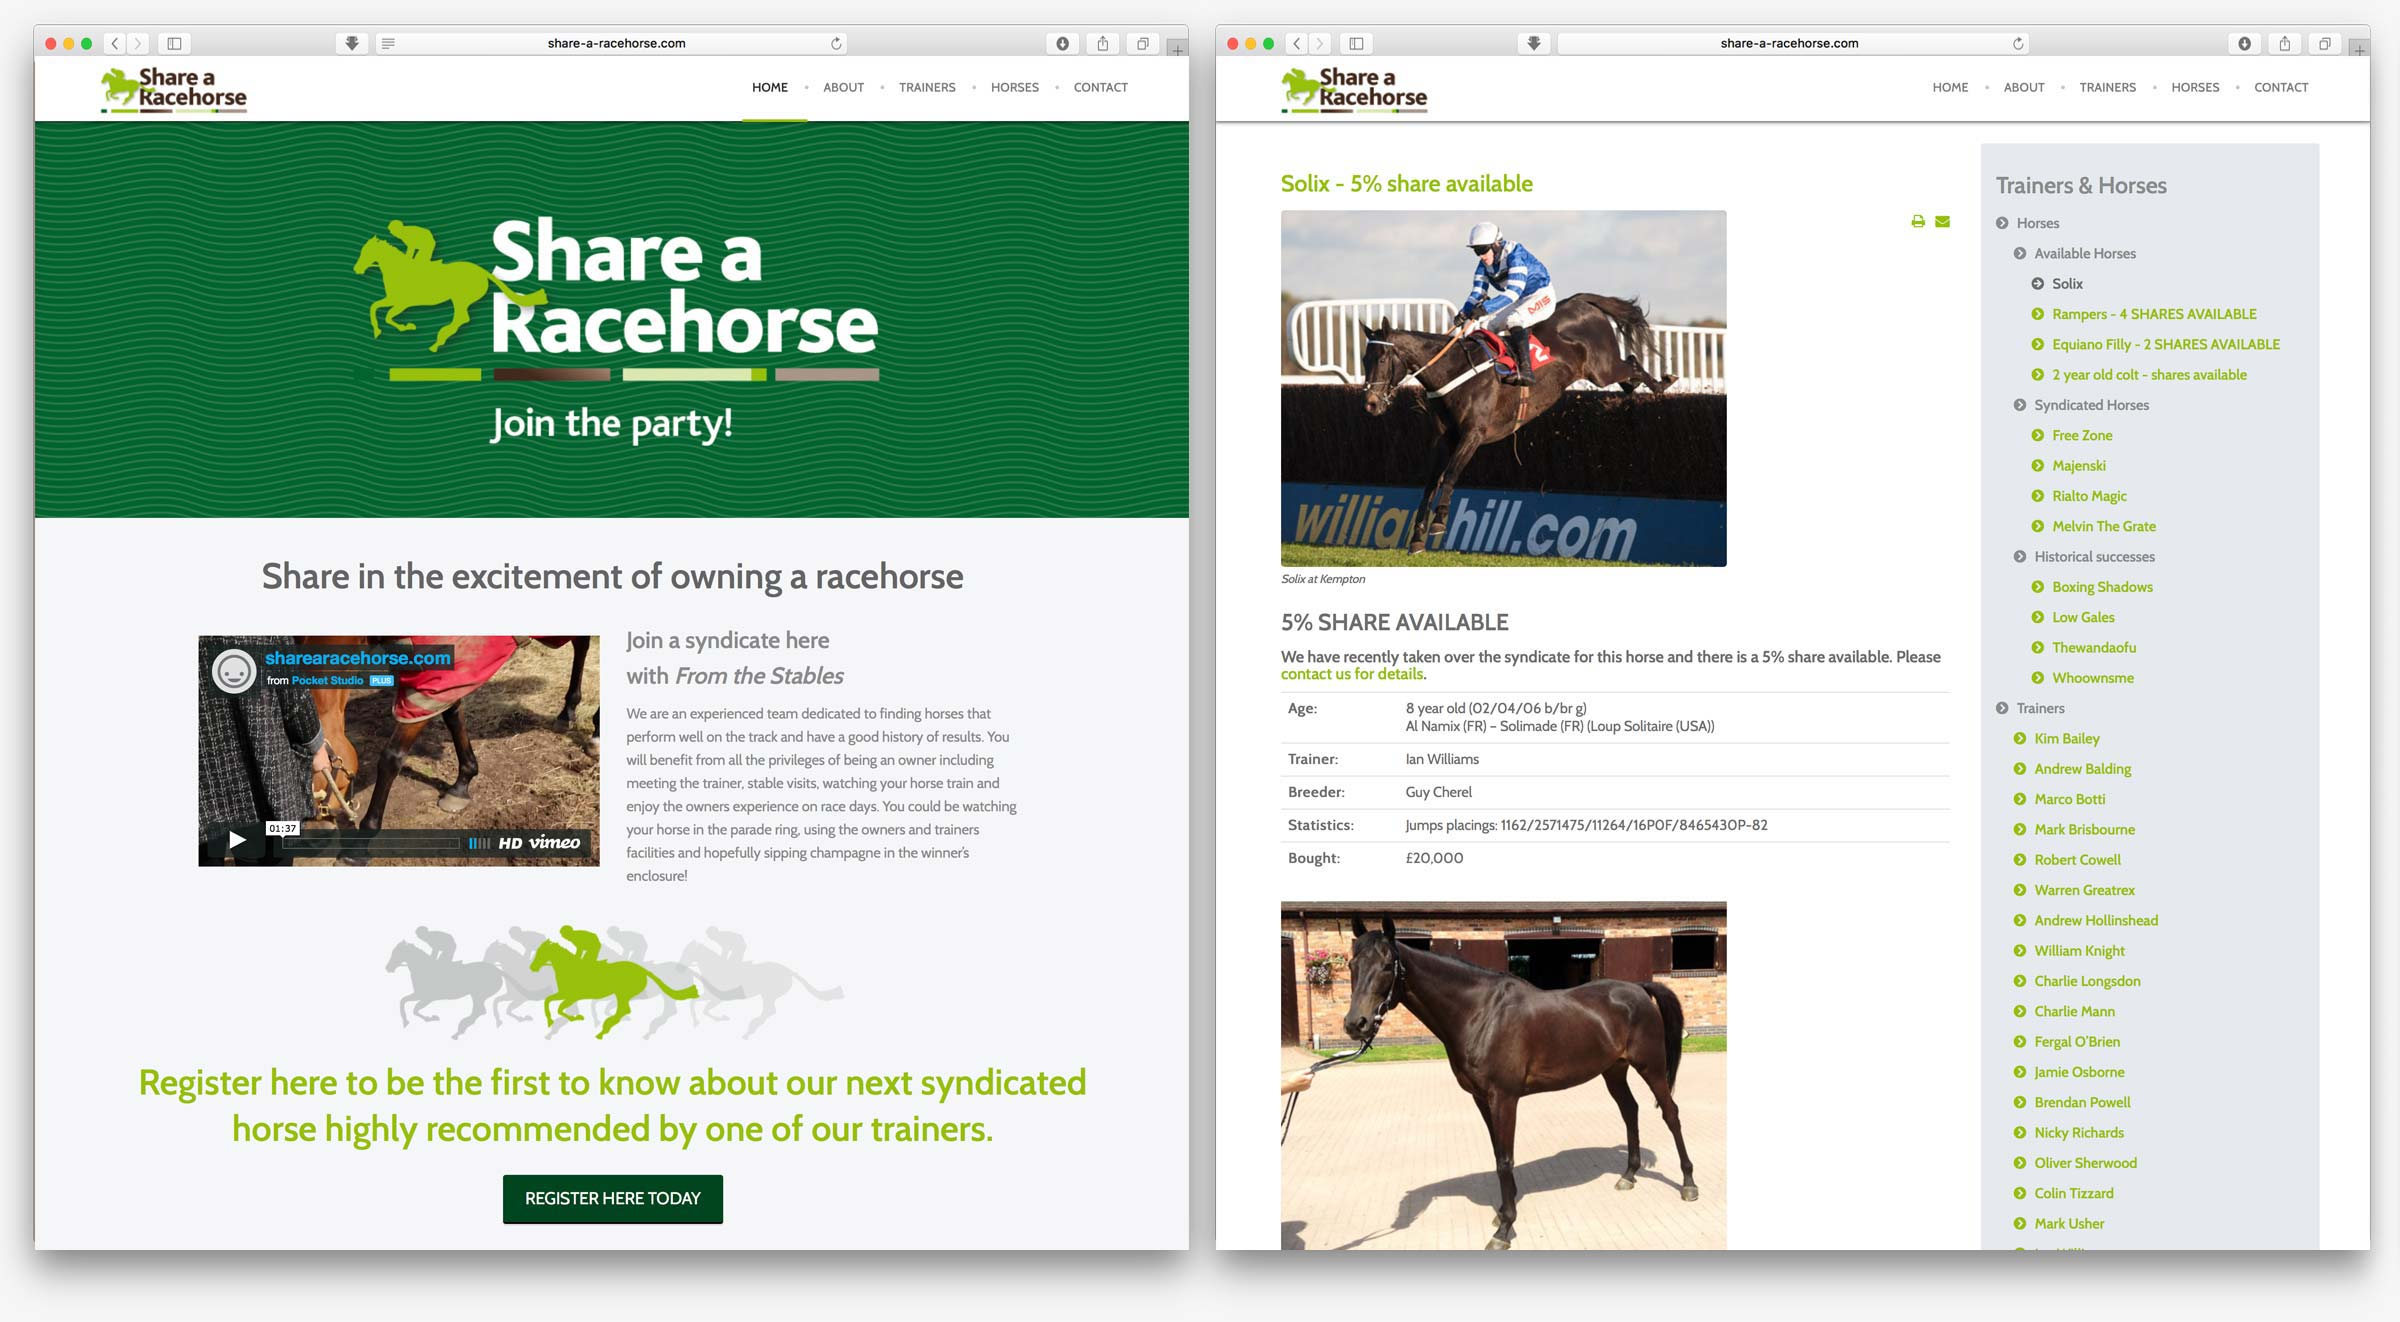 Share a Racehorse website